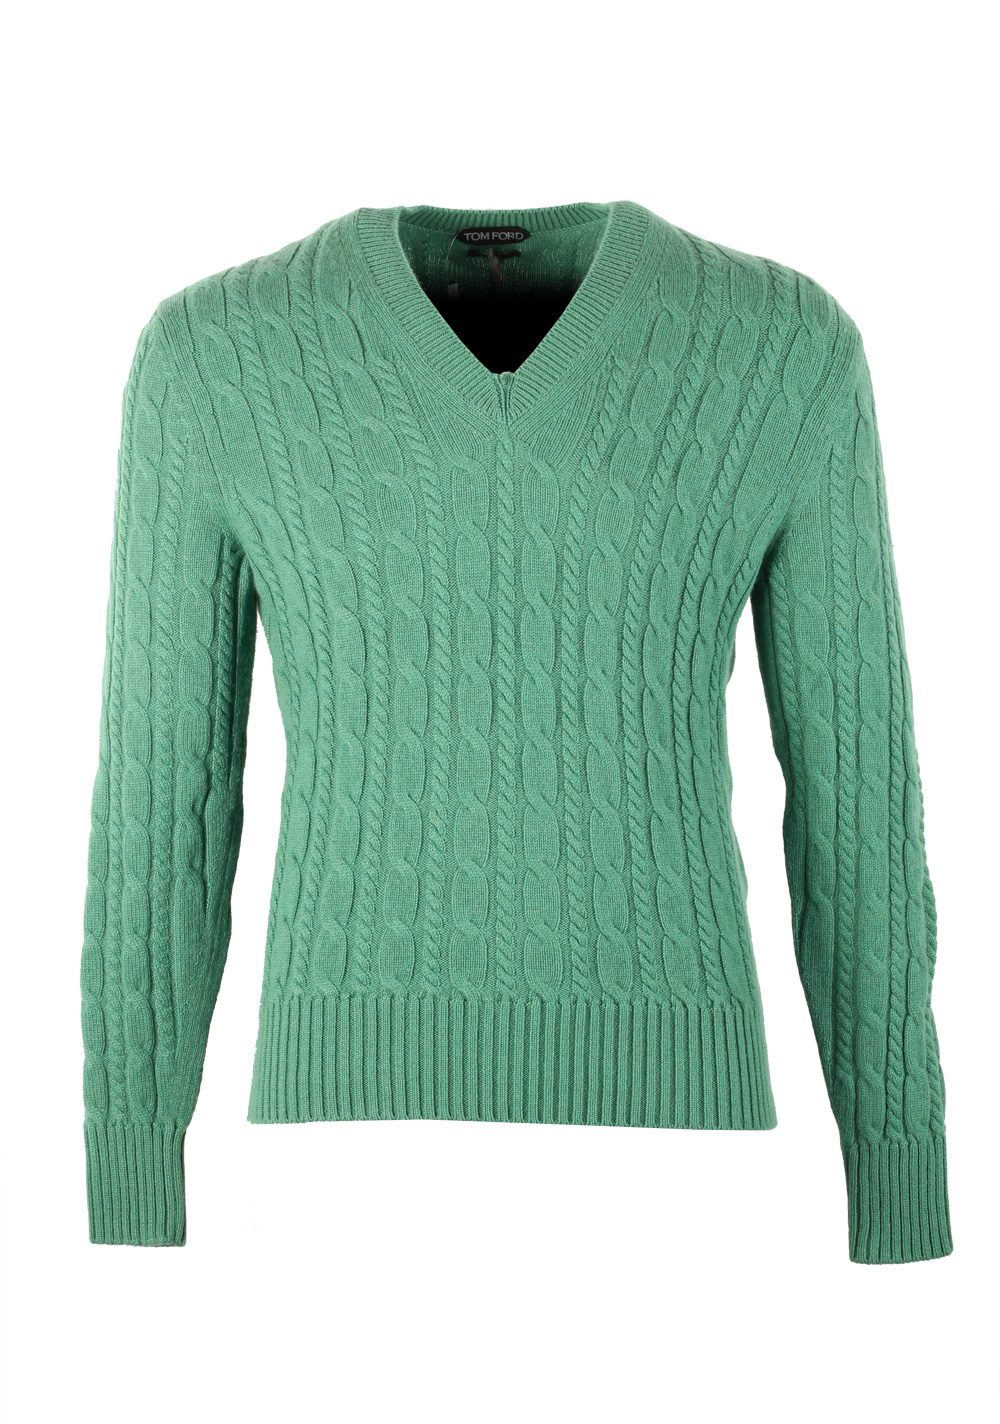 TOM FORD Green V Neck Sweater Size 48 / 38R U.S. In Cashmere | Costume Limité